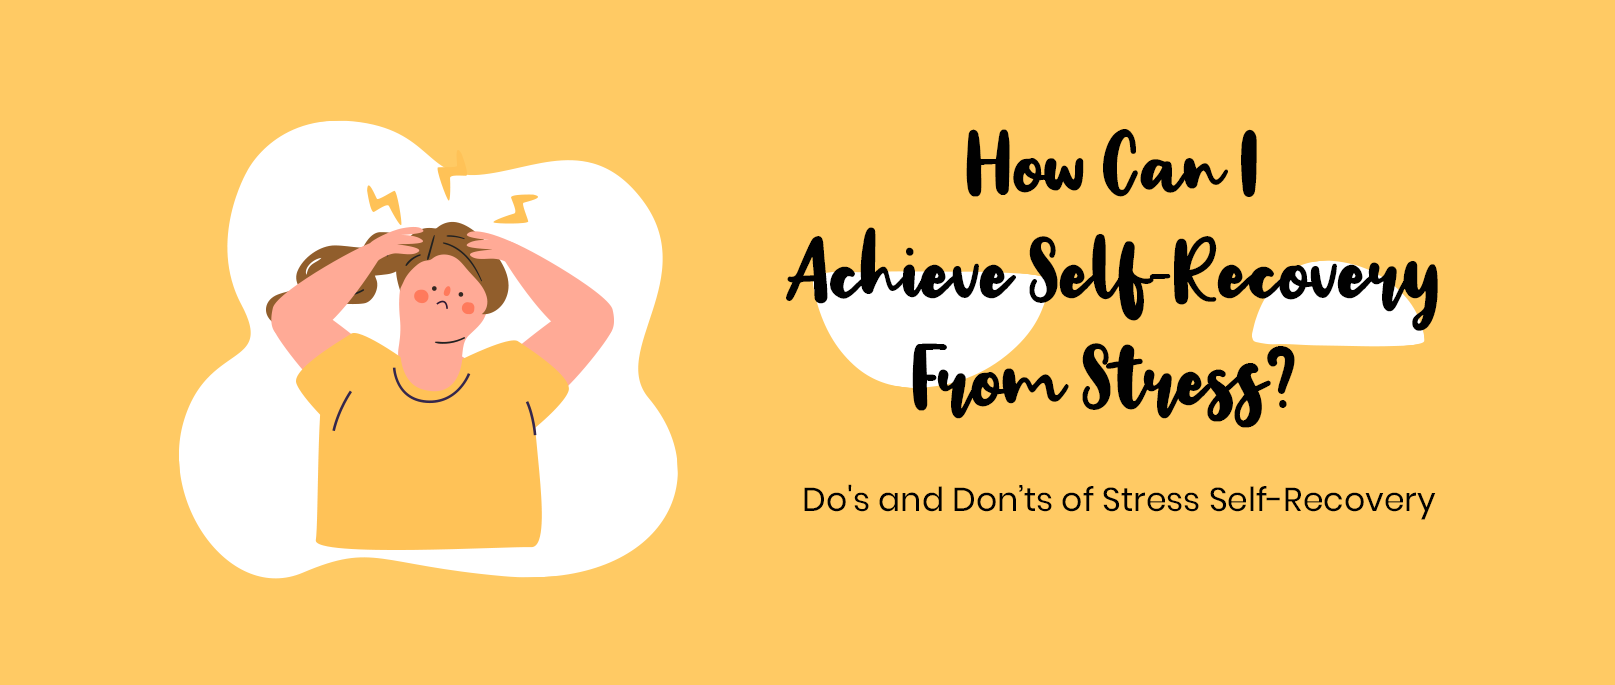 Self-recovery after stress